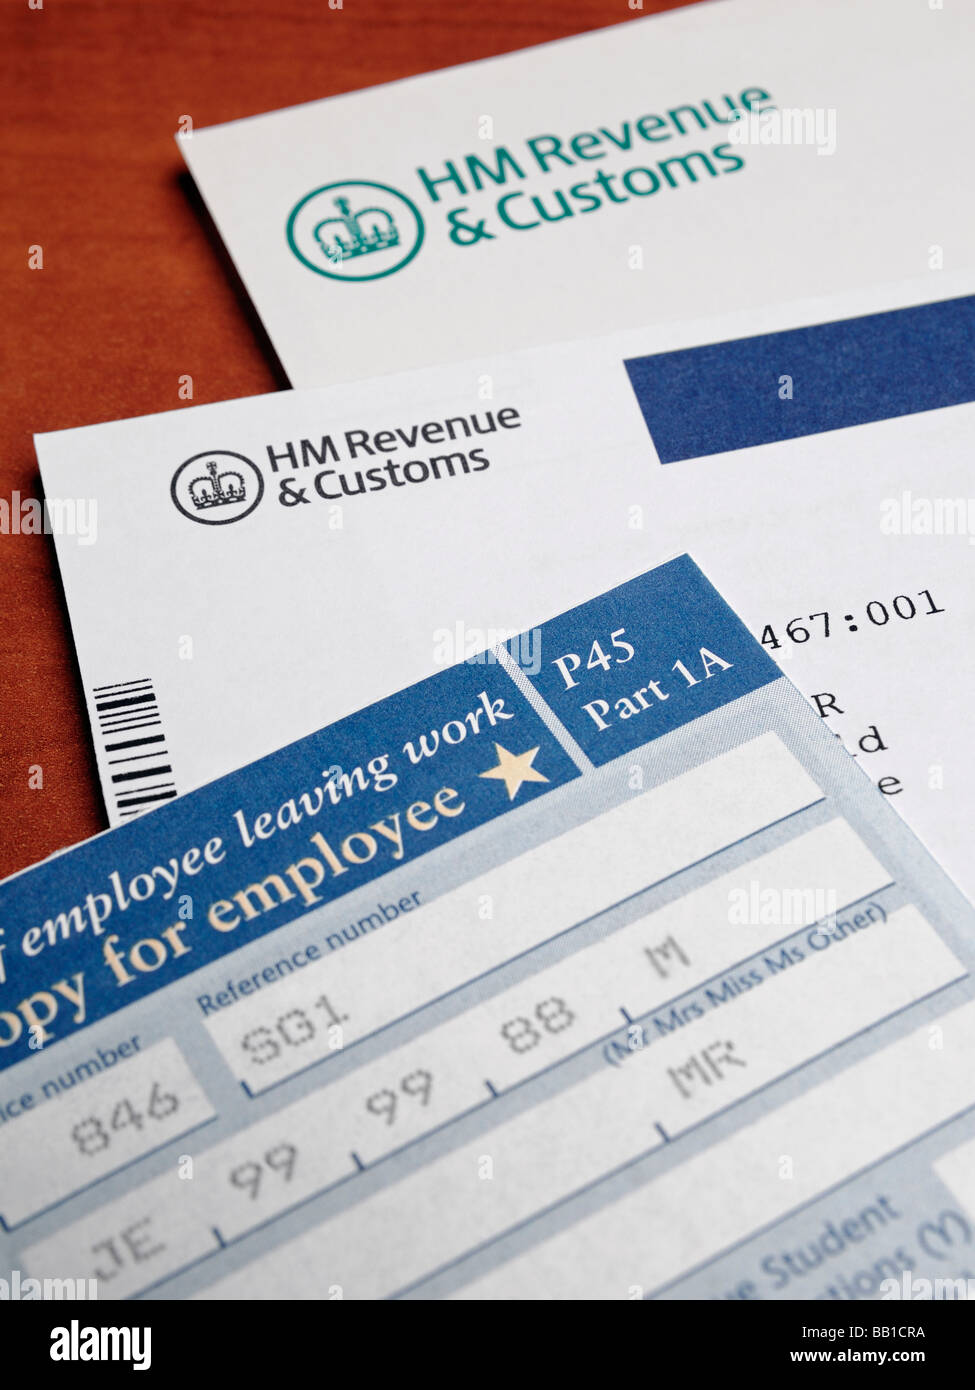 Tax Papers and Forms from HM Revenue Customs - Stock Image